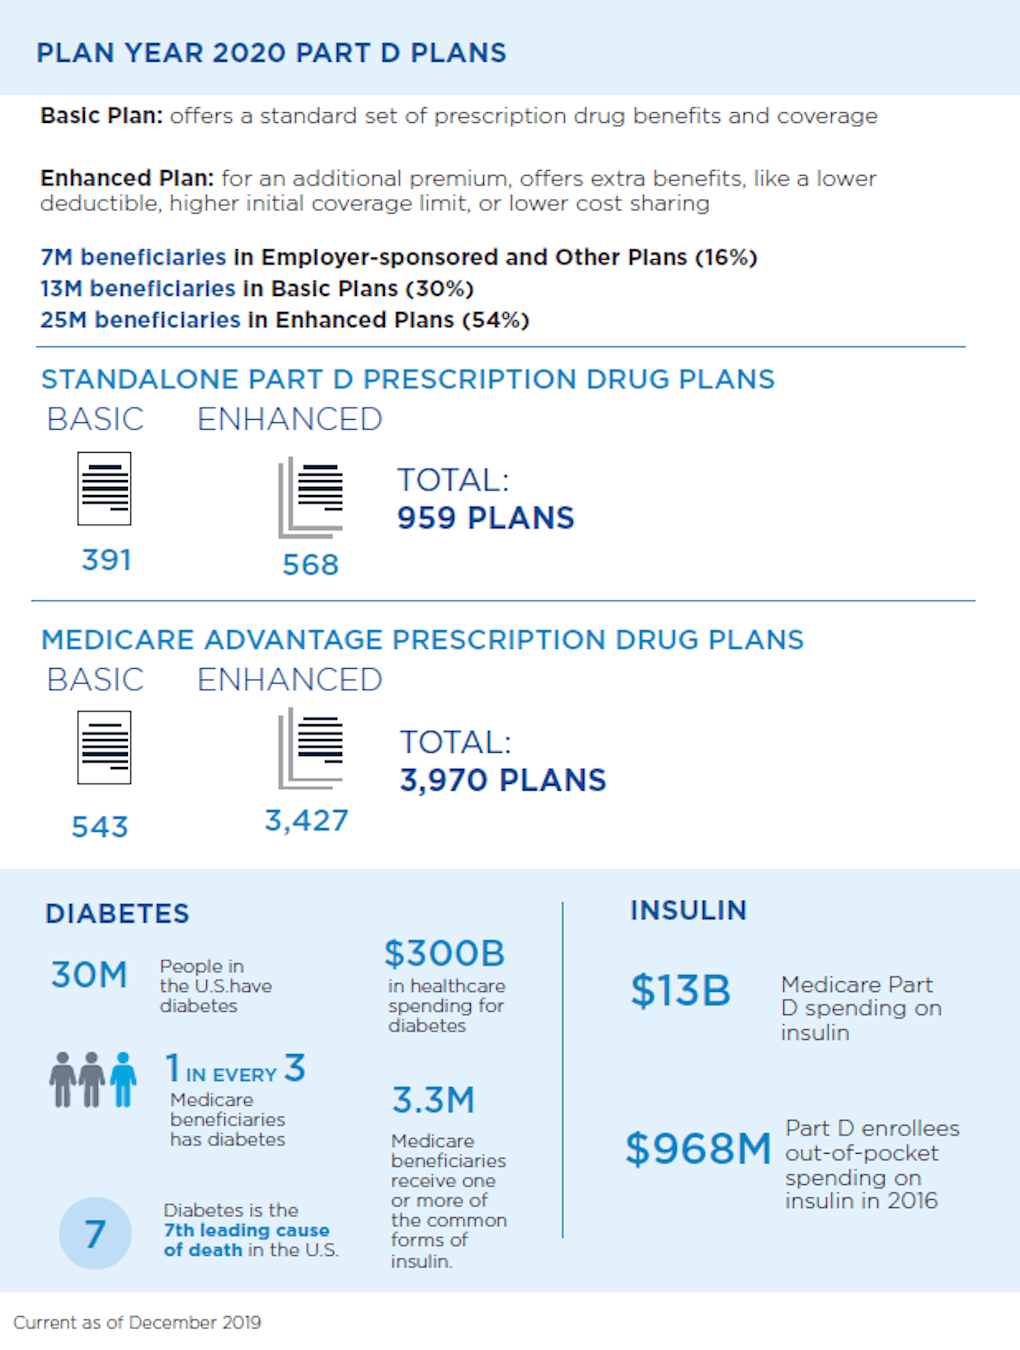 U.S. Medicare Part D at a glance infographic.